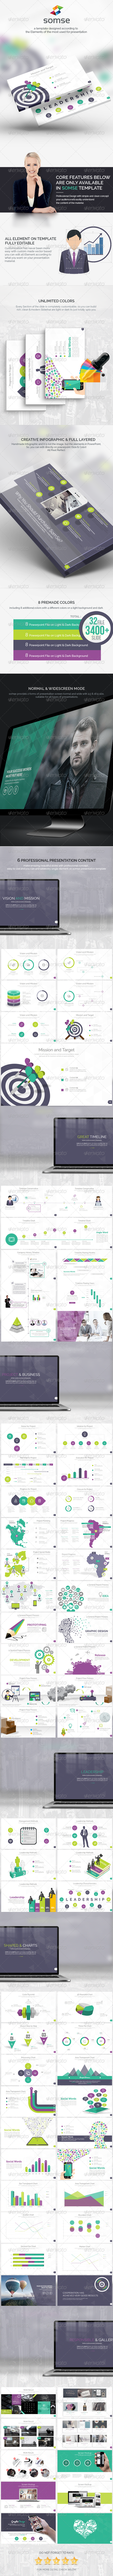 Somse All in One Powerpoint Template